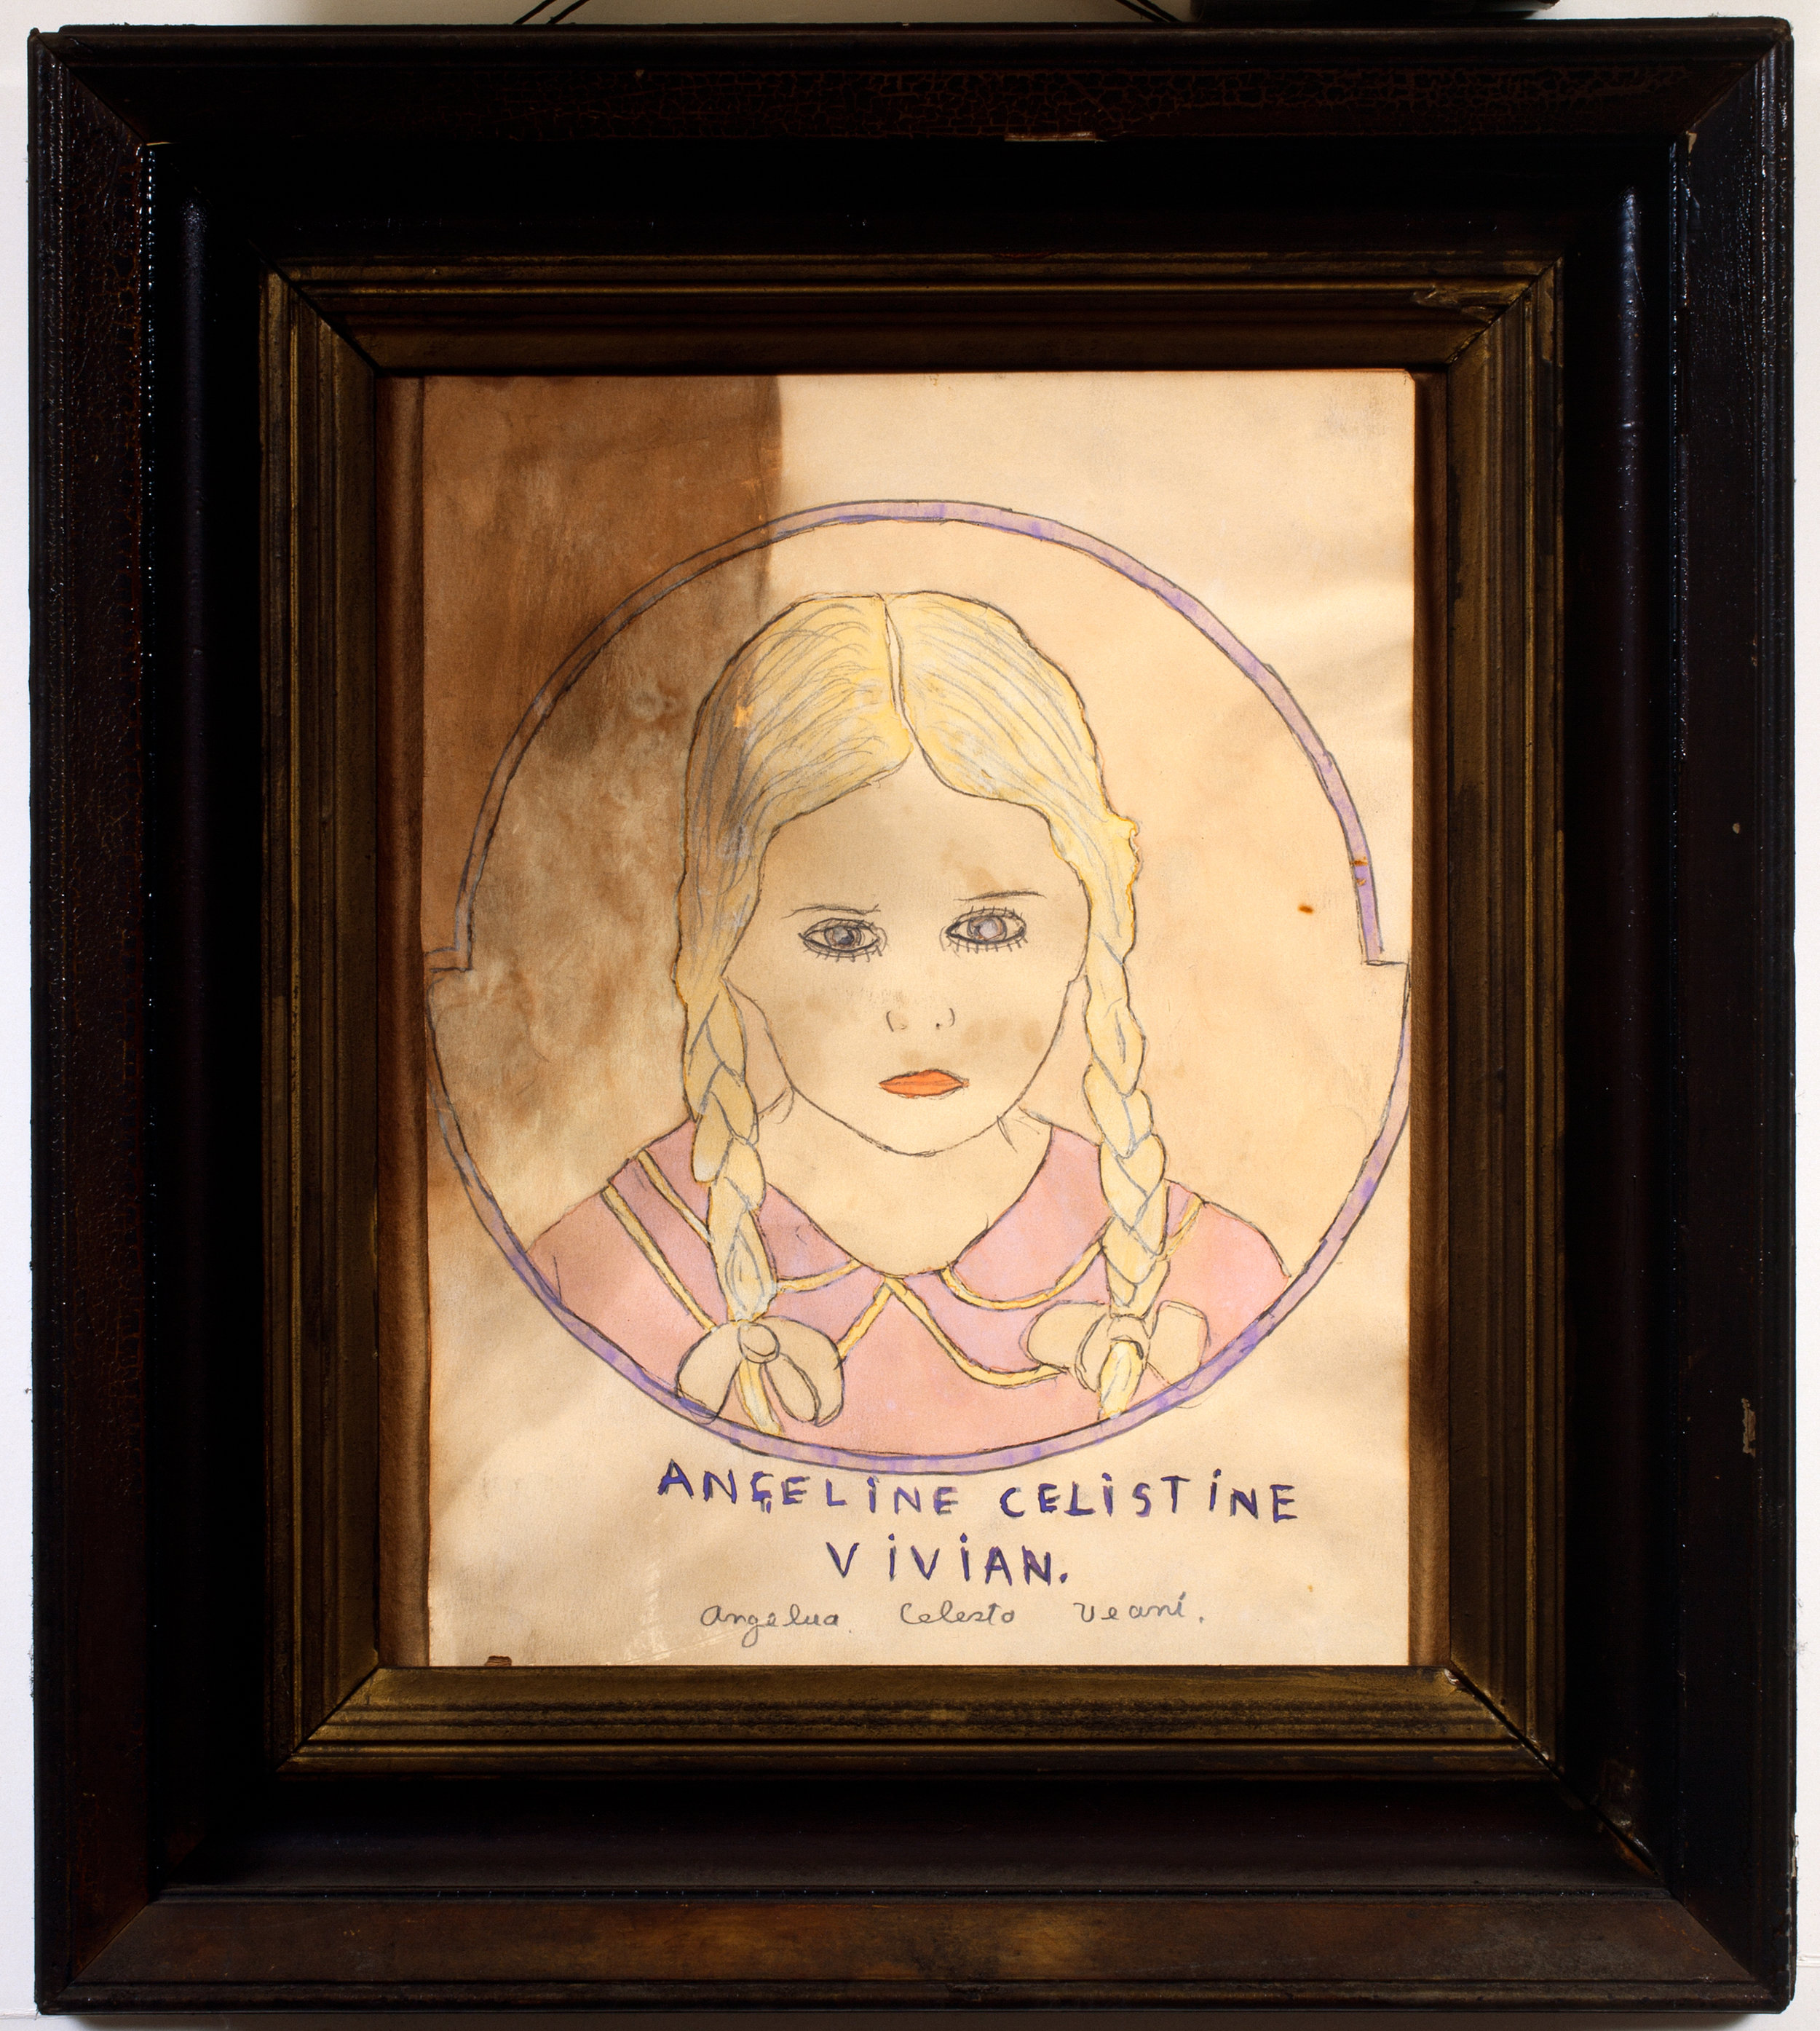 Henry Darger (American, 1892-1973). Angeline Celistine Vivian, ca. 1940s. Mixed media on paper, 17 ¼ x 15 ¼ in. (framed). Photo by John Faier.Collection of Robert A. Roth